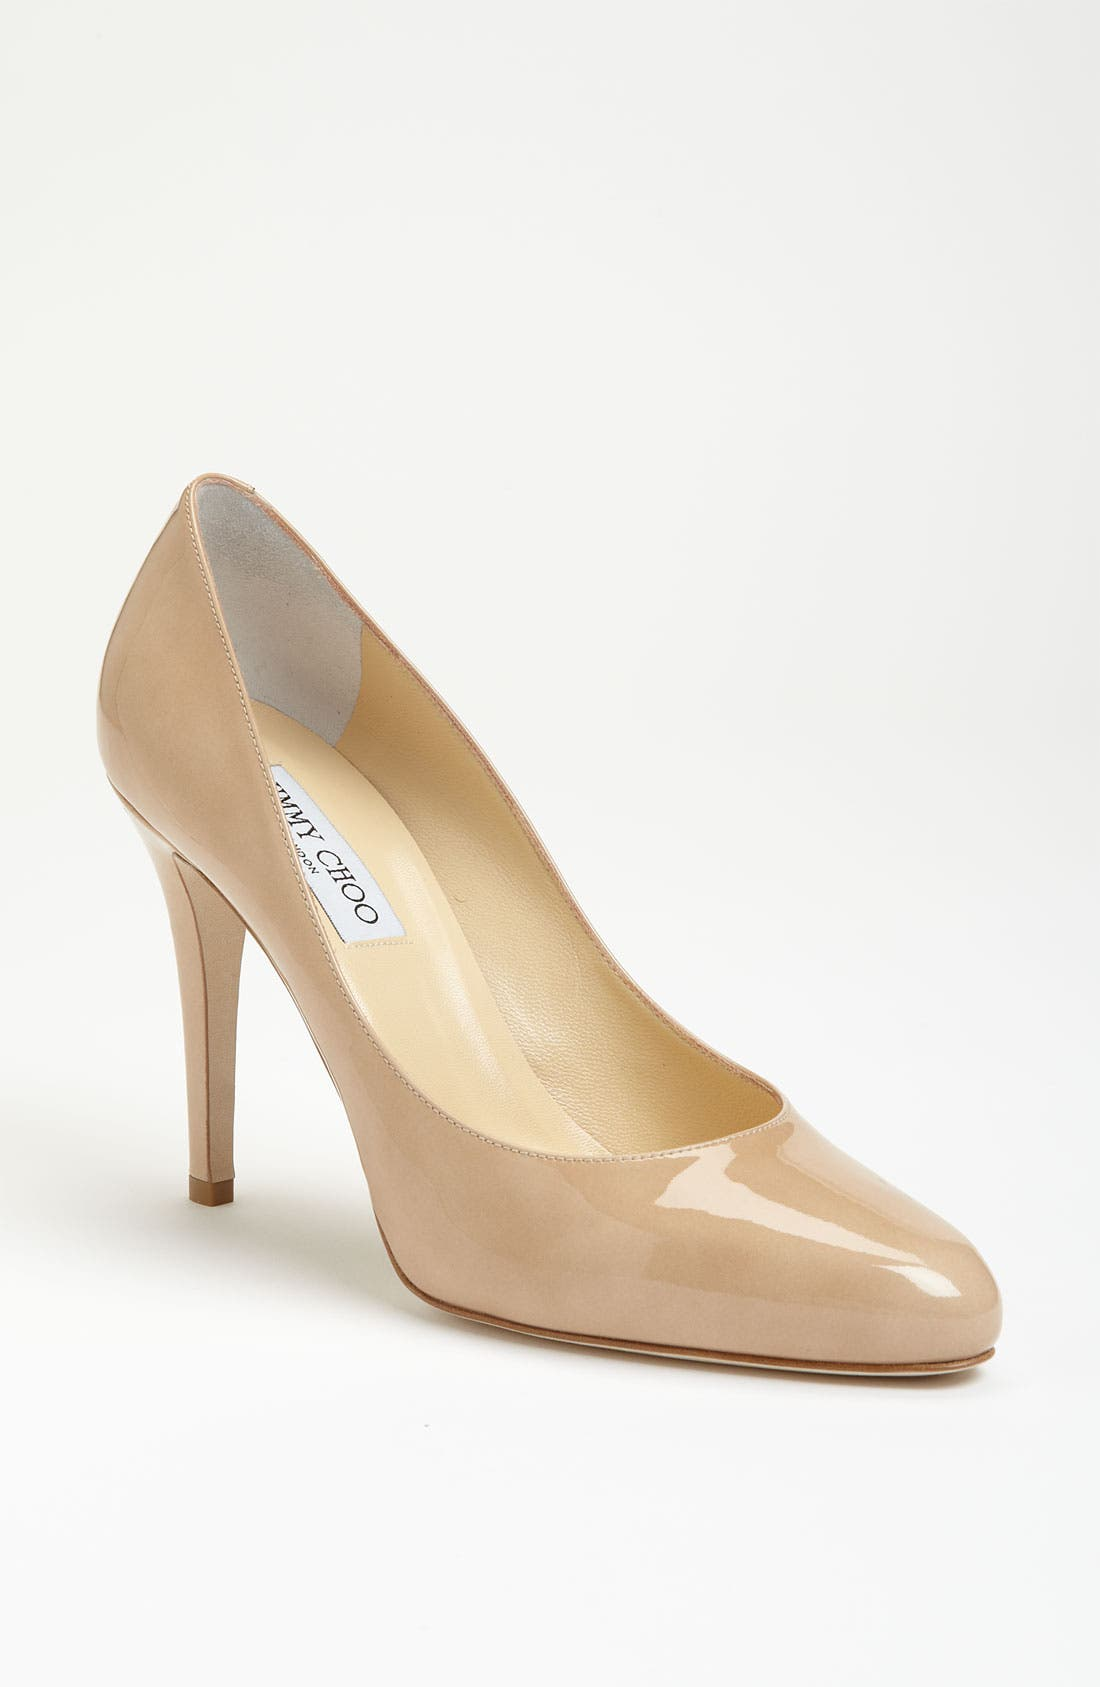 Alternate Image 1 Selected - Jimmy Choo 'Vikki' Platform Pump